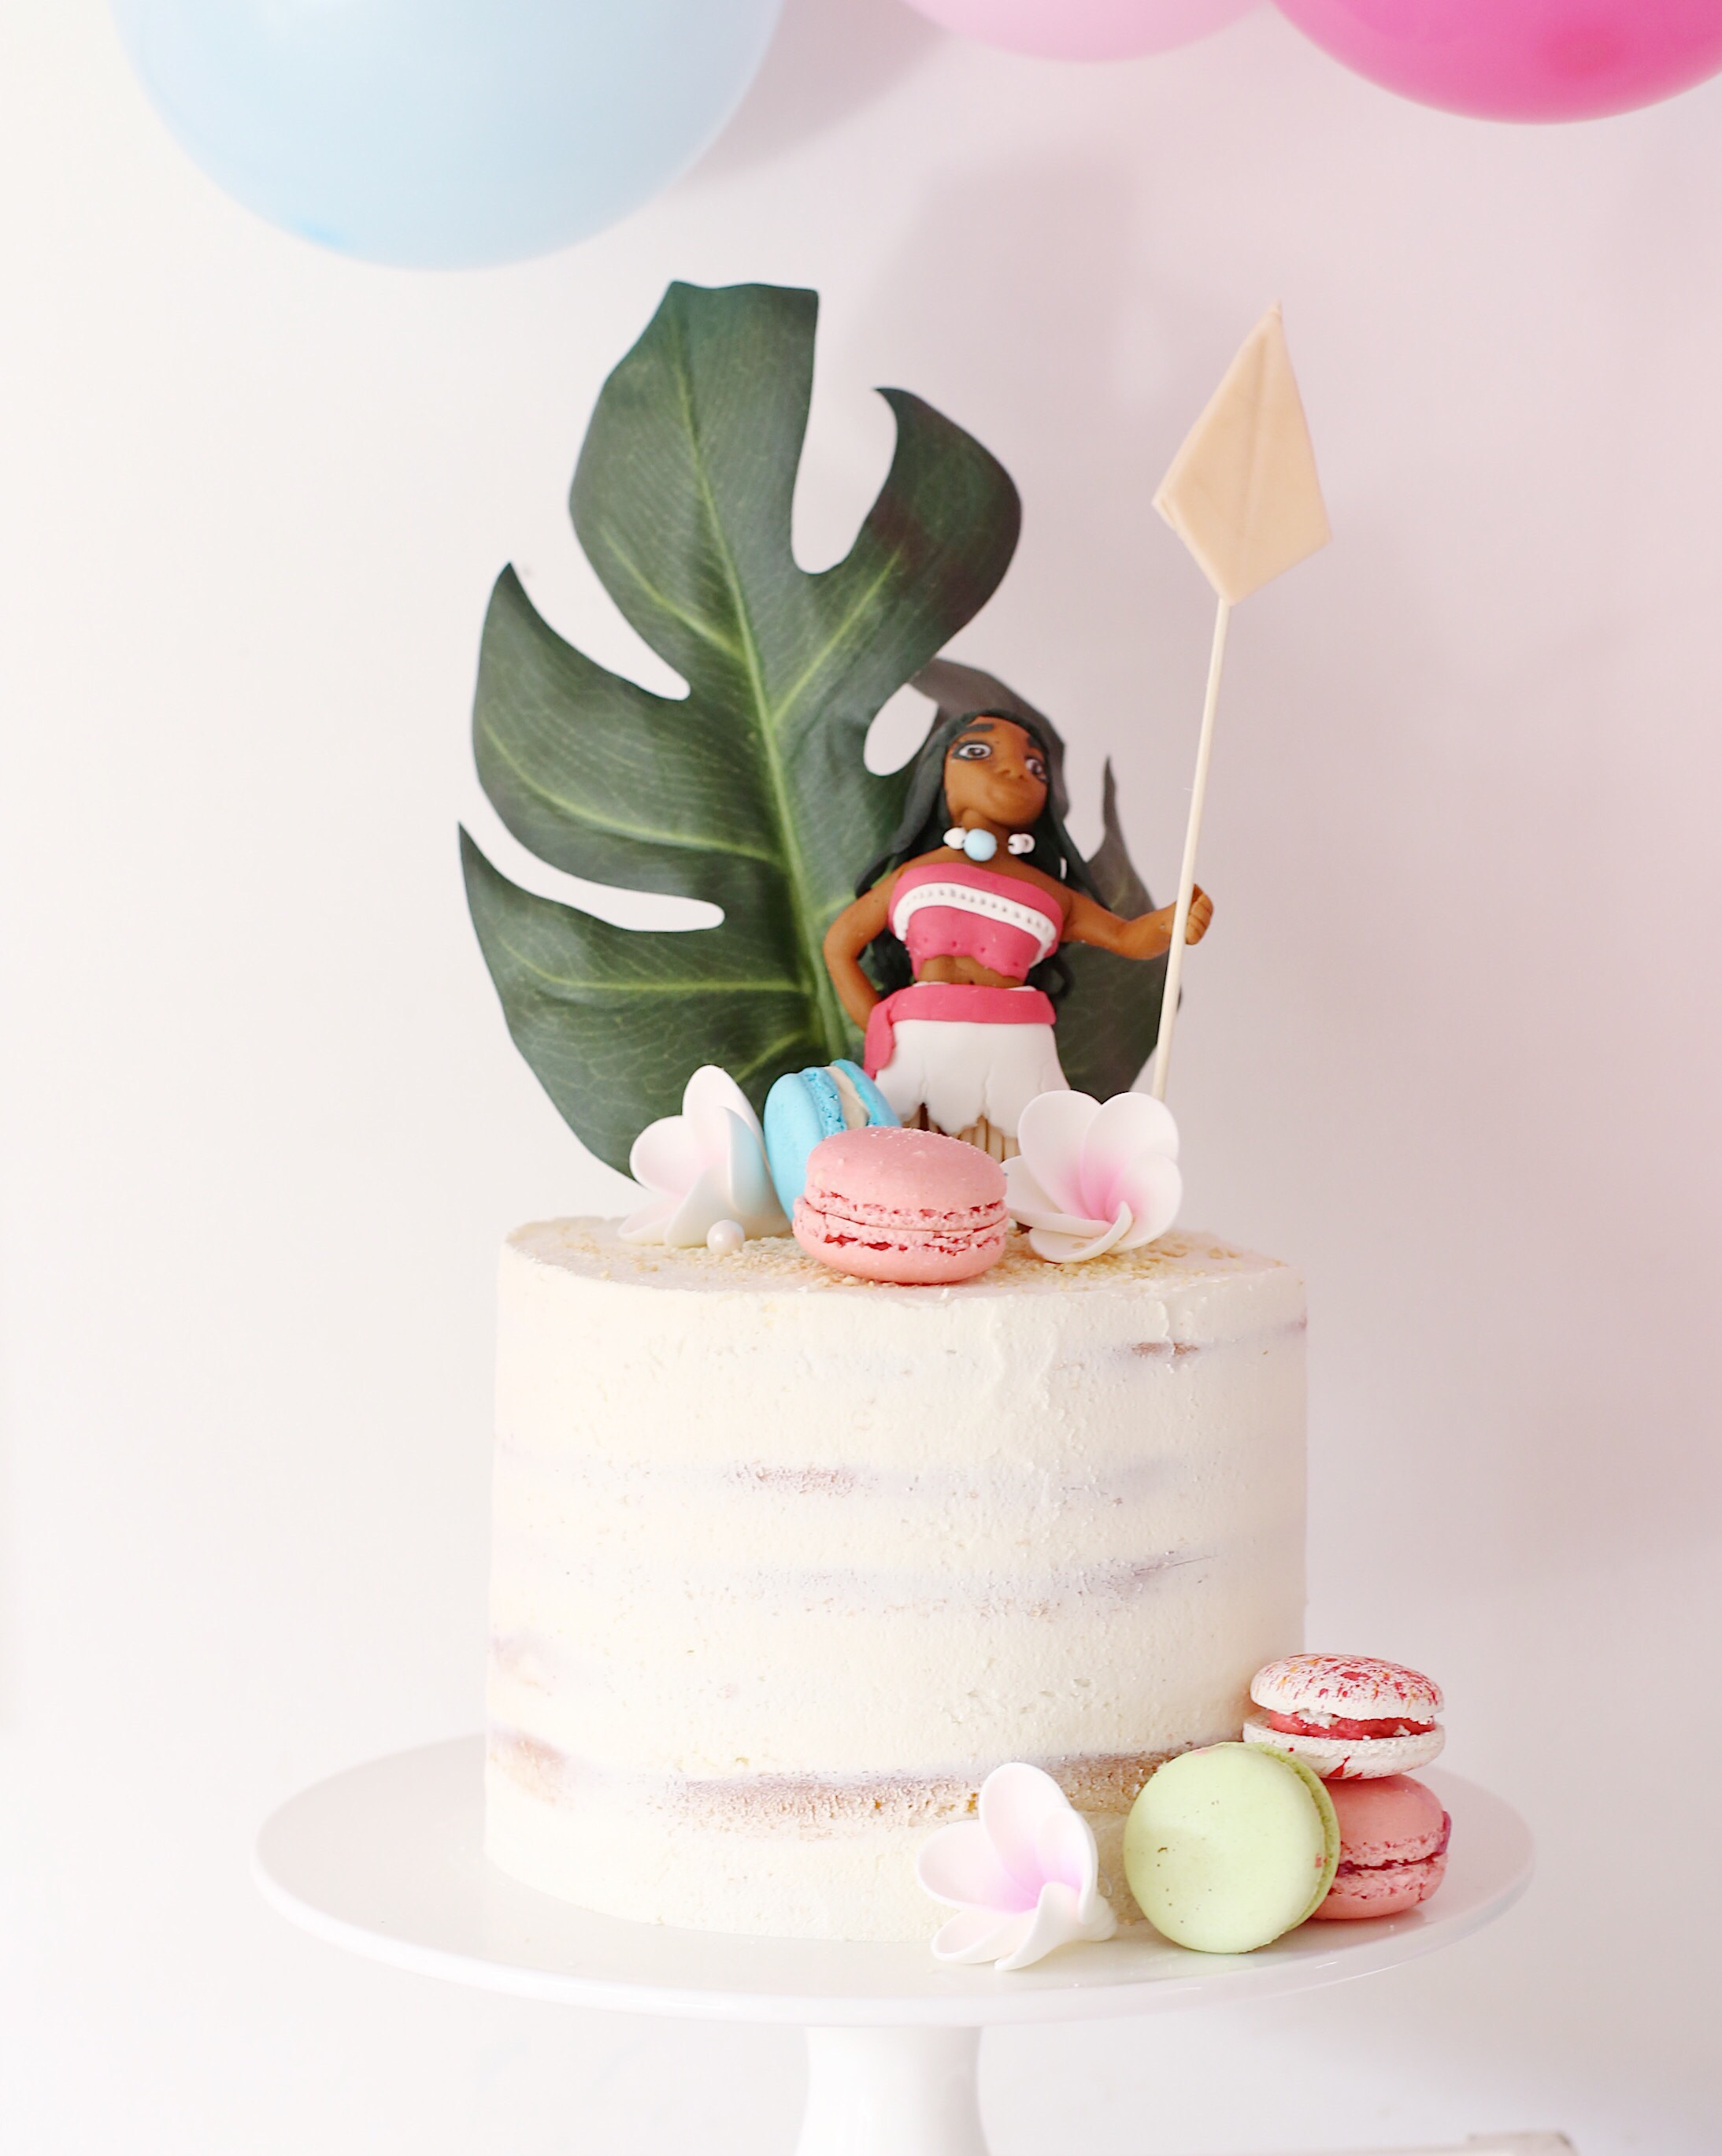 Moana party cake with macarons and Moana topper